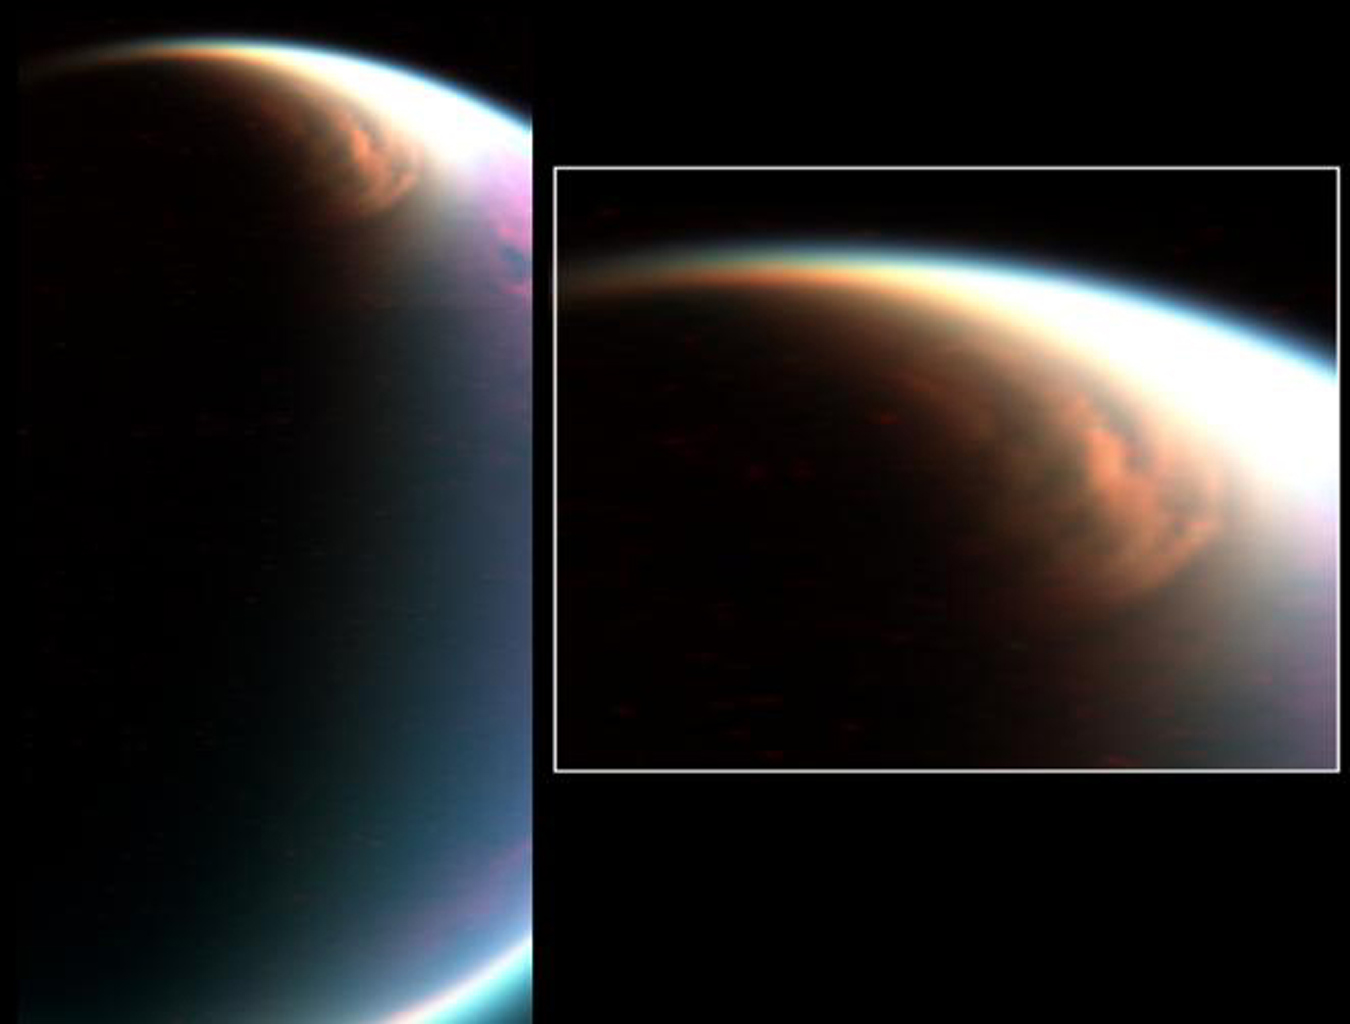 NASA's Cassini's visual and infrared mapping spectrometer has imaged a huge cloud system covering the north pole of Titan.